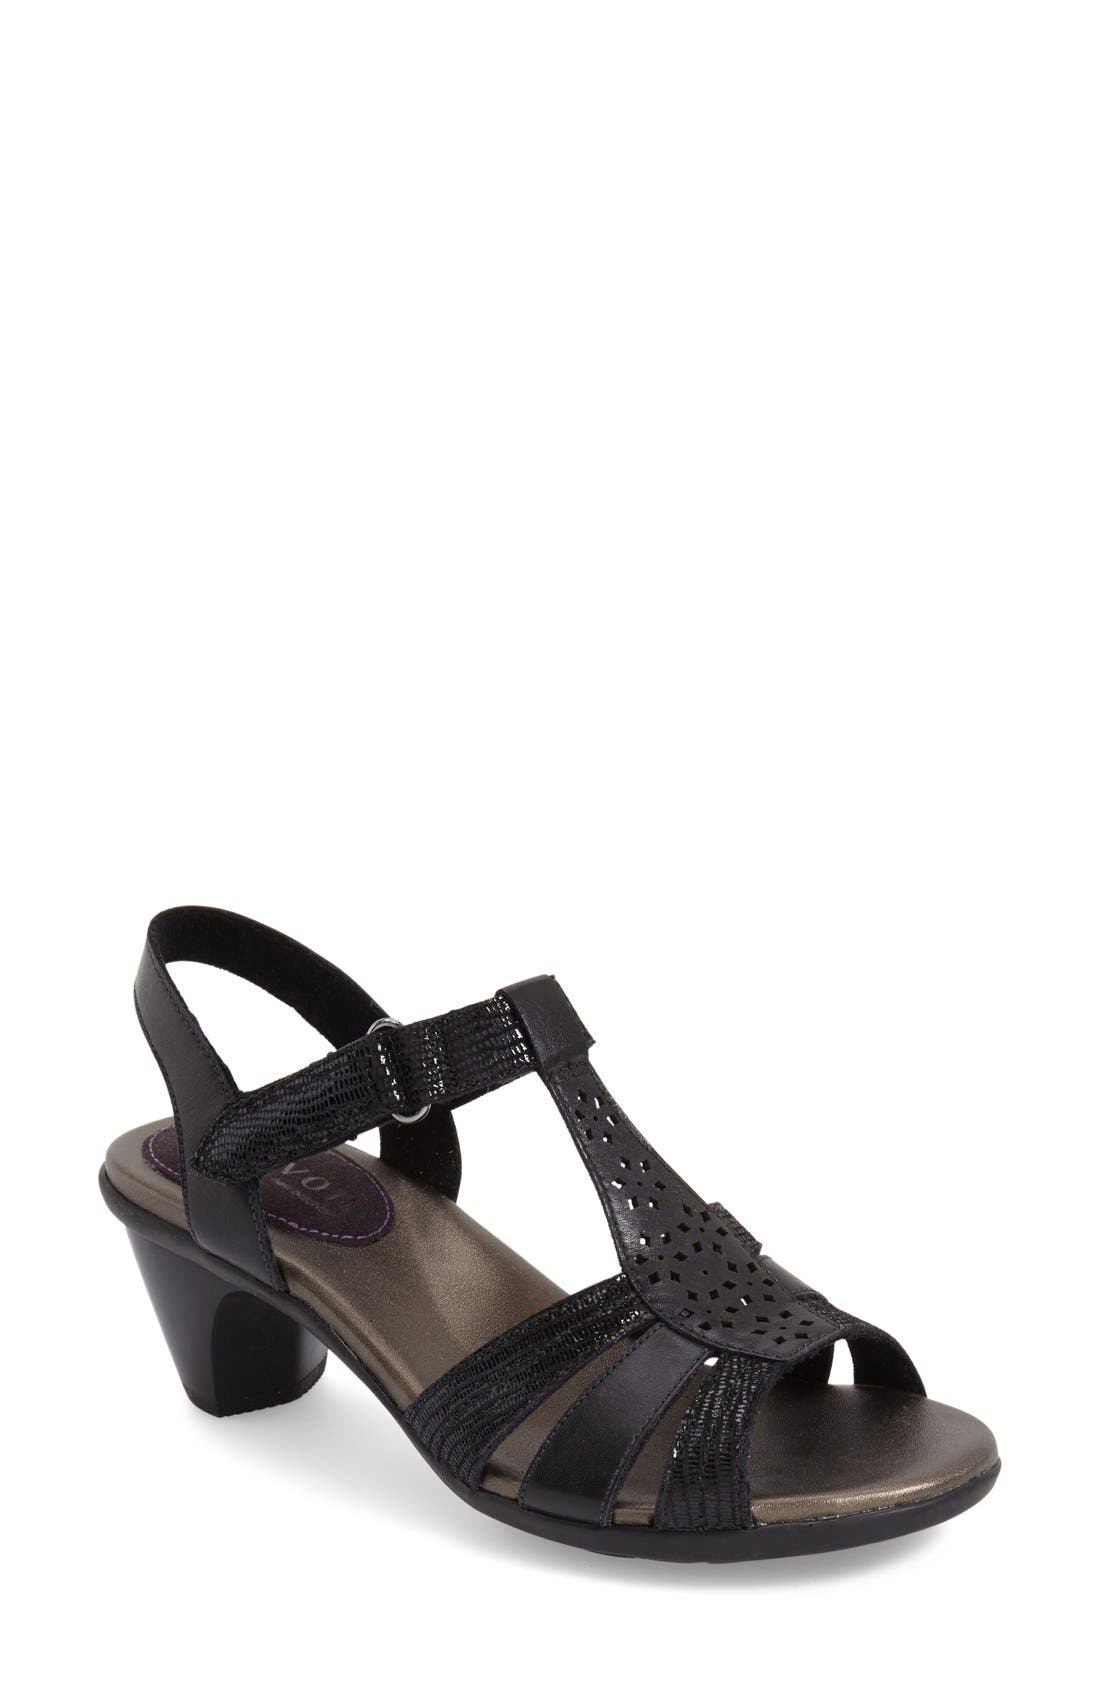 'Mary' T-Strap Sandal,                         Main,                         color, 001